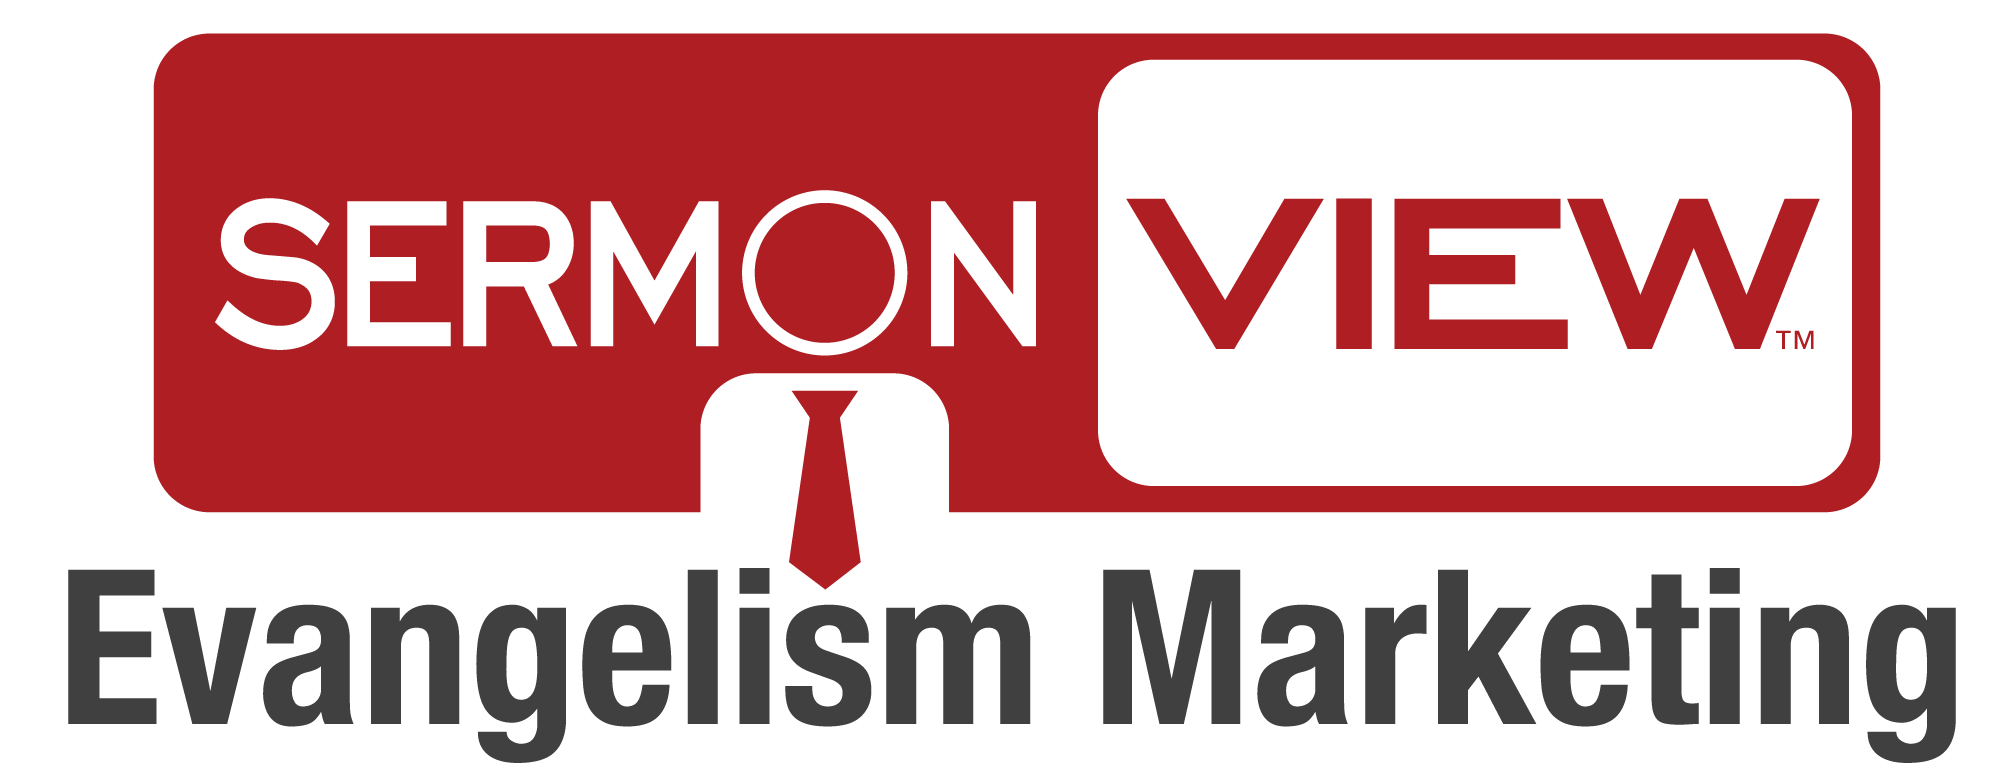 Evangelism Marketing Powered by SermonView